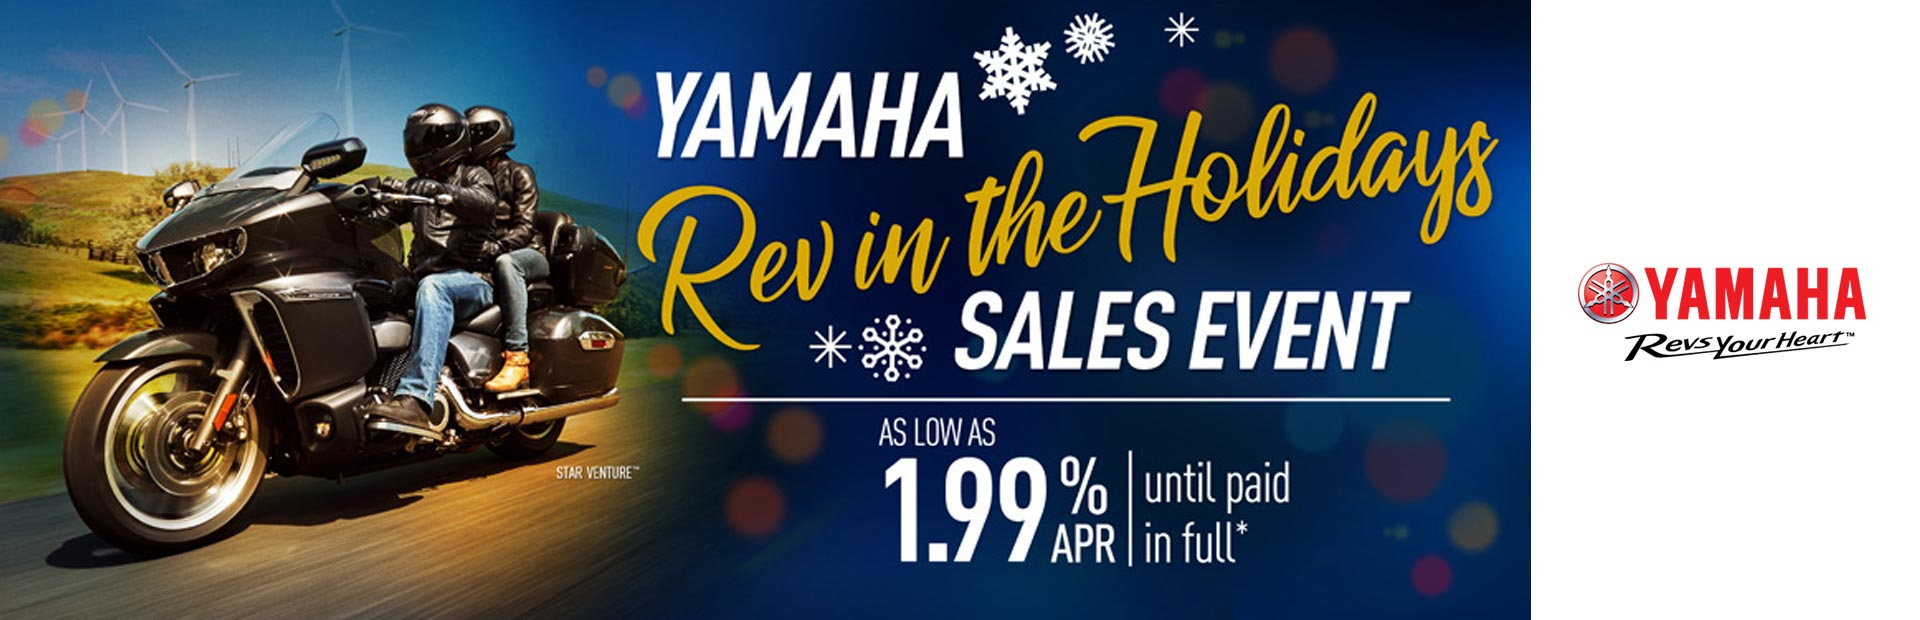 Yamaha: Rev in the Holidays Sales Event (Touring)